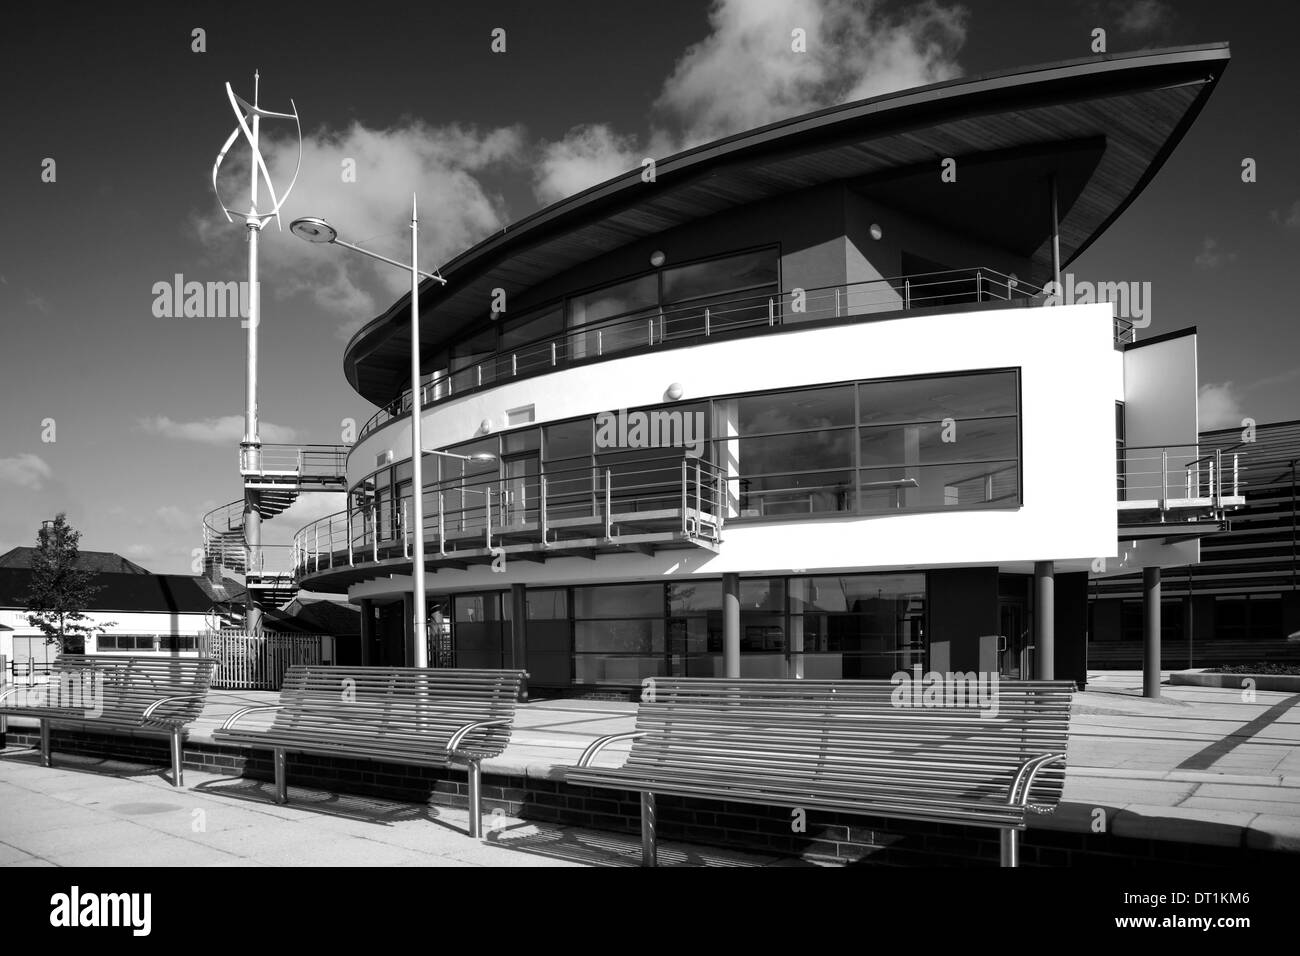 The New Boat House Centre Wisbech town Fenland Cambridgeshire County England Britain UK - Stock Image